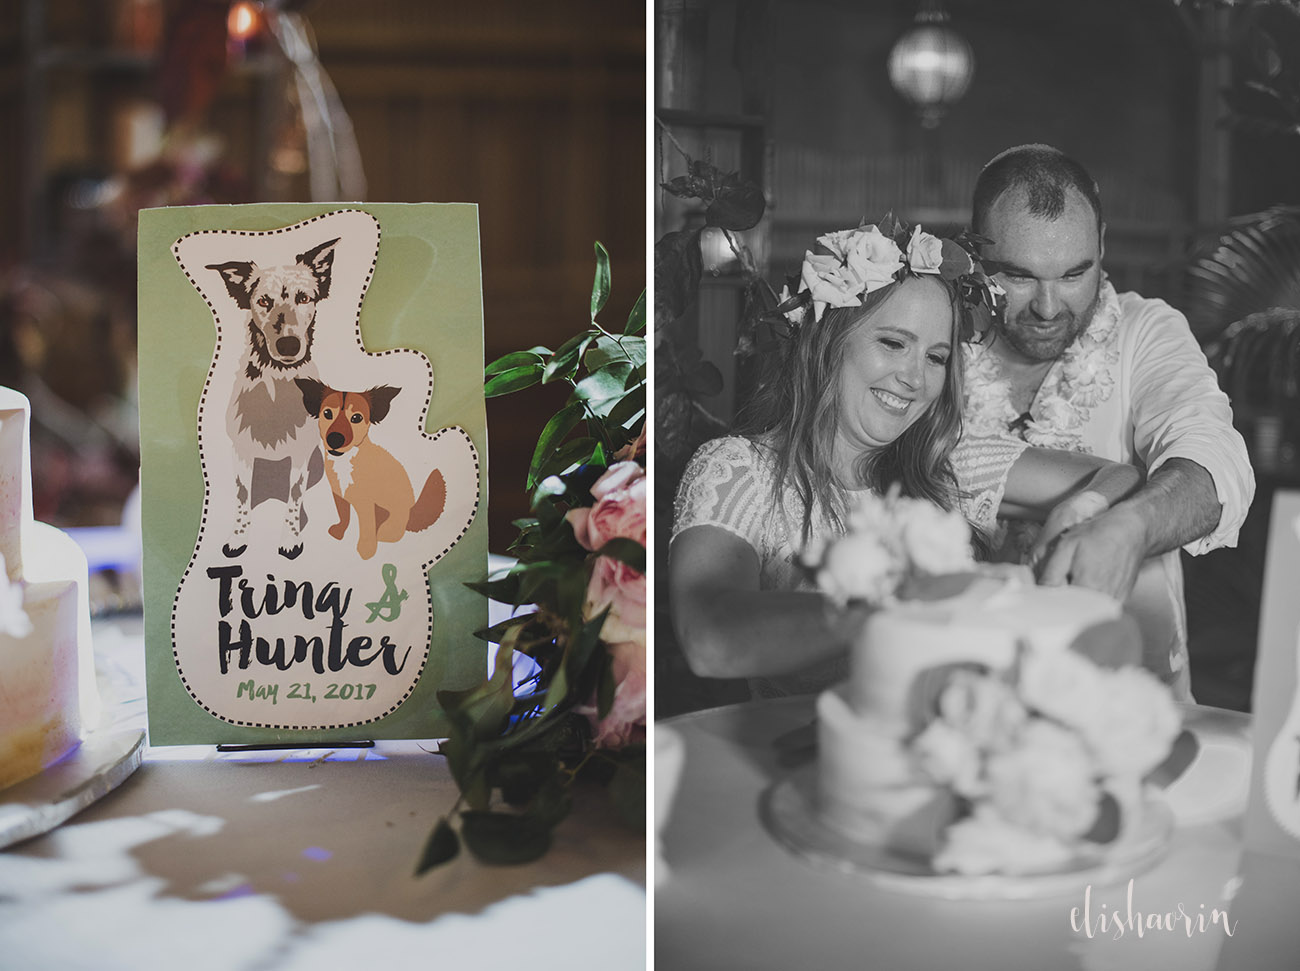 bride-and-groom-cutting-cake-at-rumblines-st-john